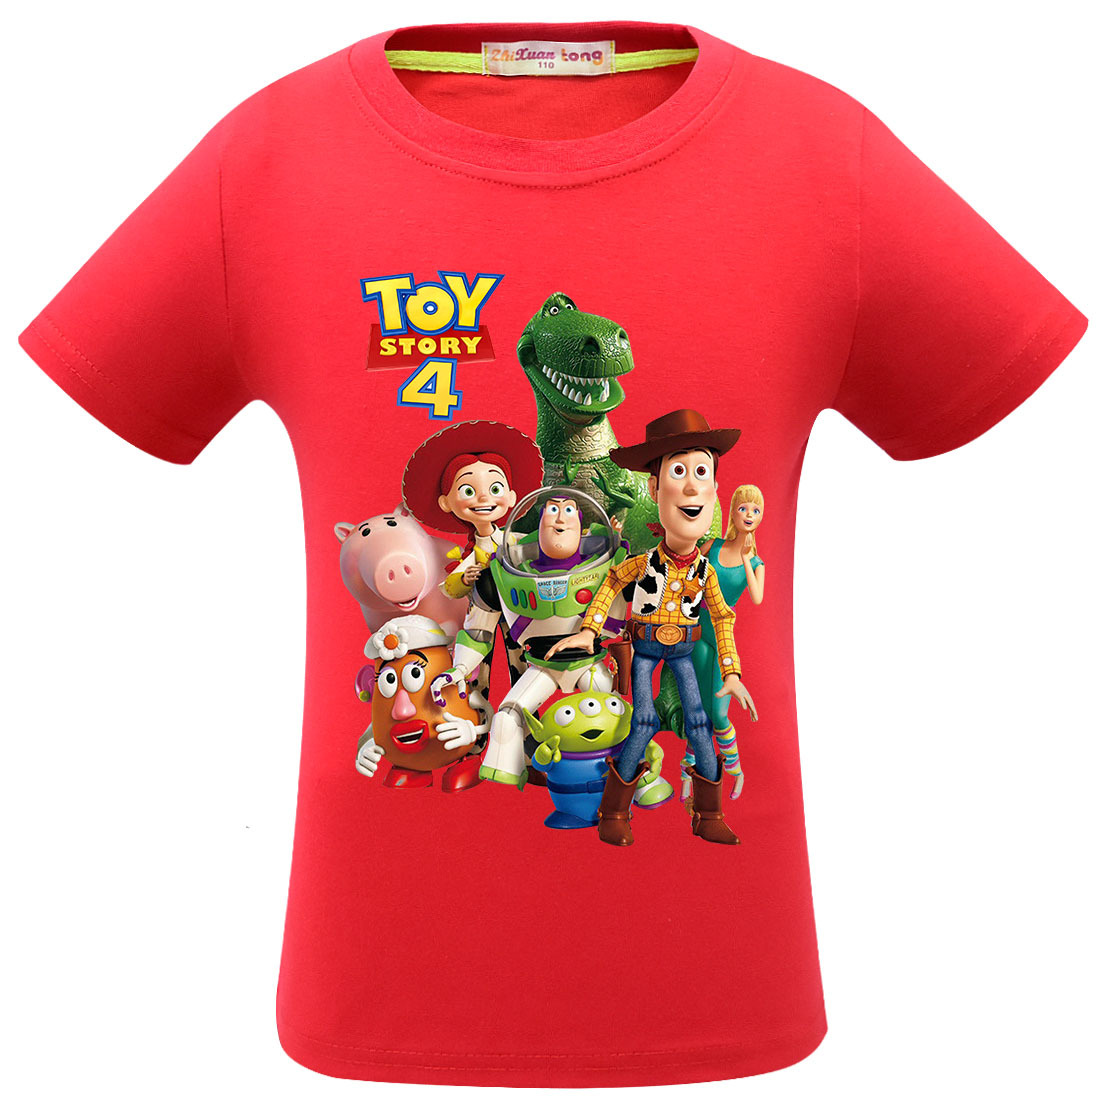 3-11 Years Toy Story 4 Forky Woody Alien Baby Kids Summer T-shirt T shirt Children Tshirts Tops Boys Girls Clothes Sports Tees(China)